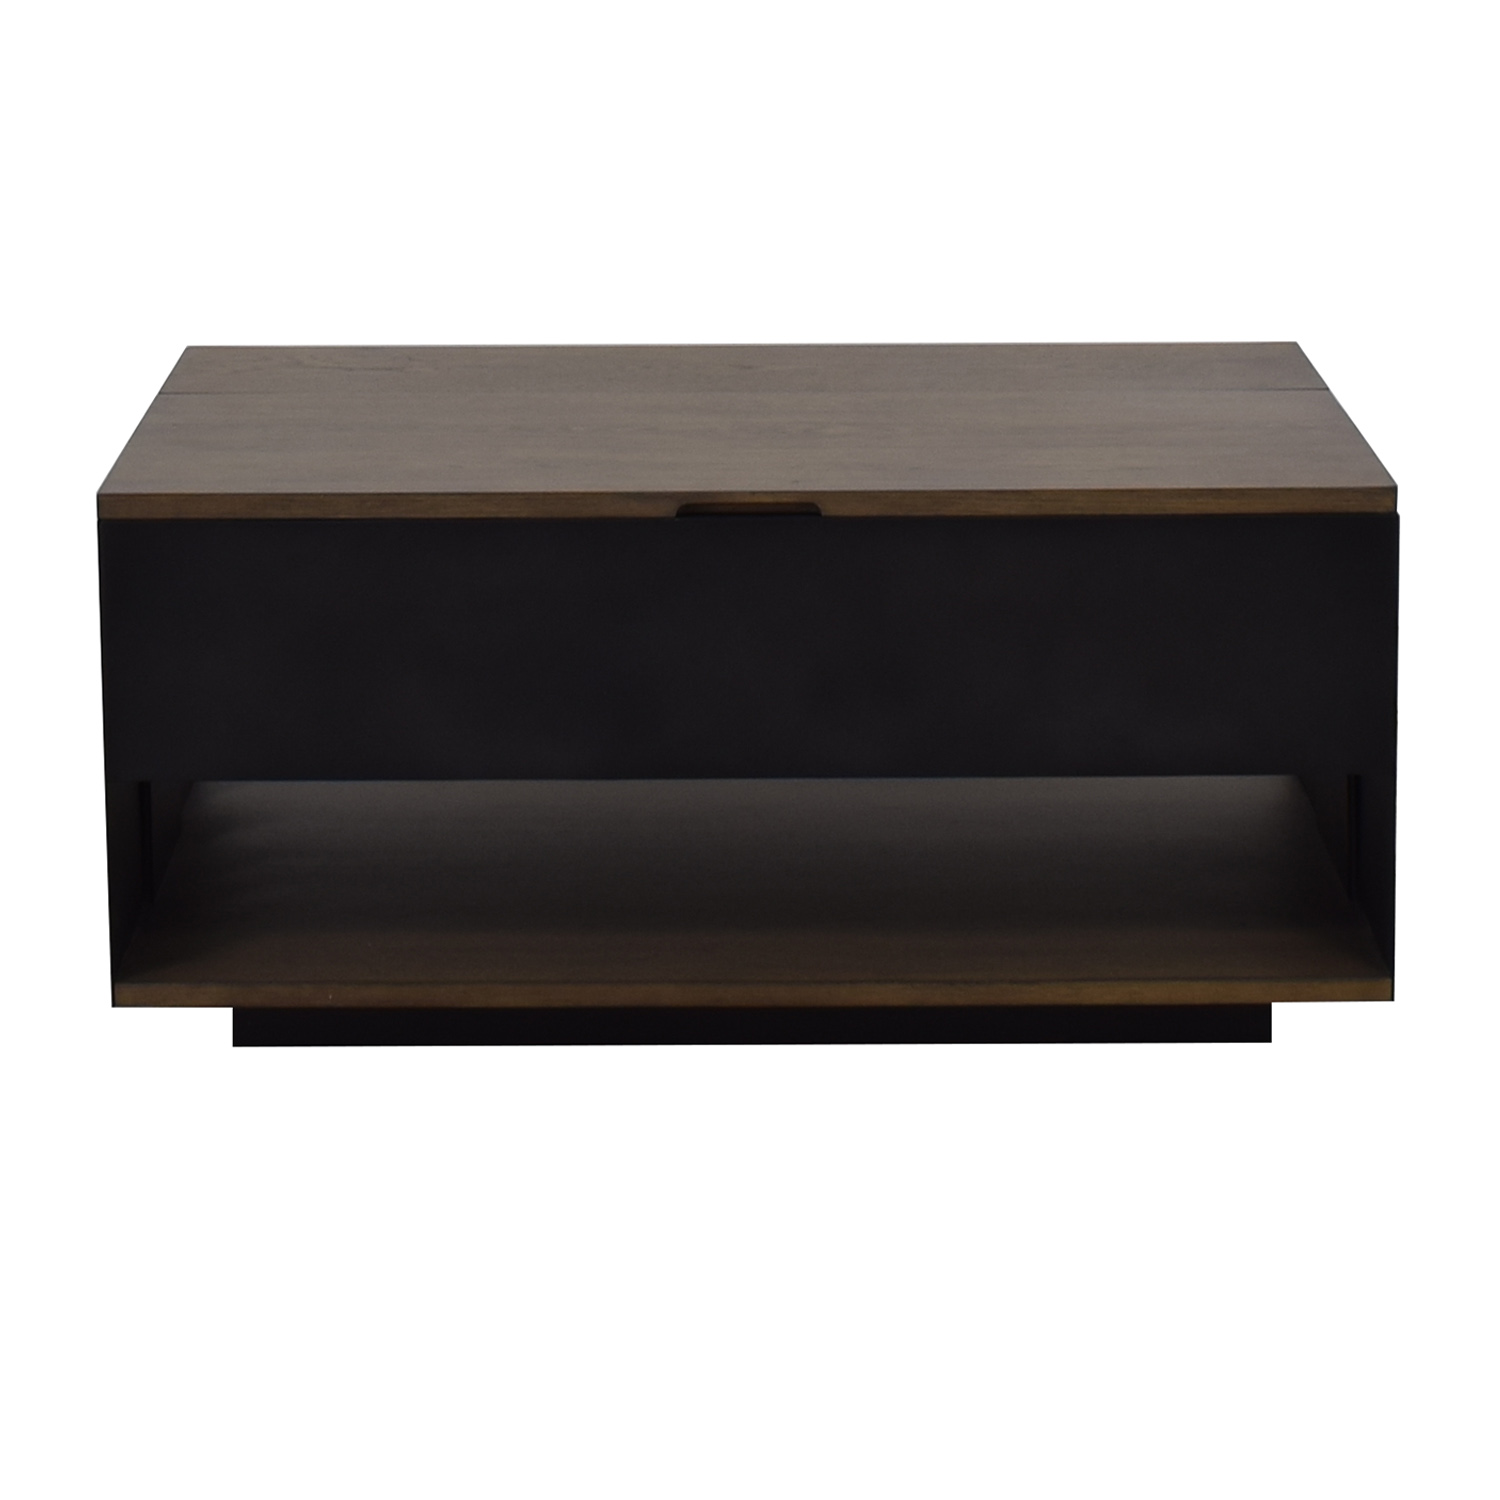 West Elm West Elm Massaro Pop Up Coffee Table for sale